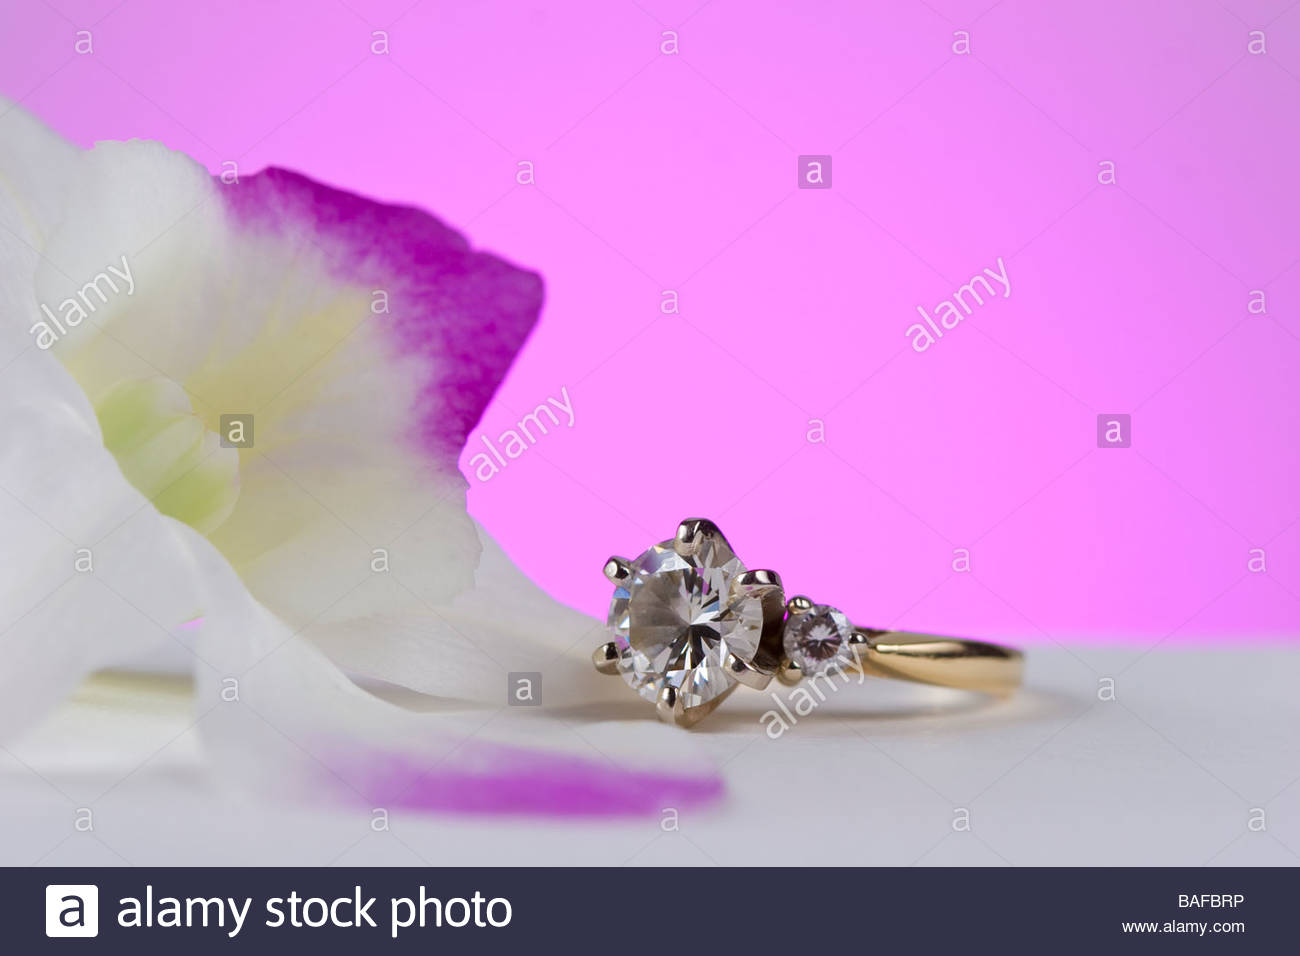 image orchid images photos stock dendrobium photo pink ring bafbrp with diamond